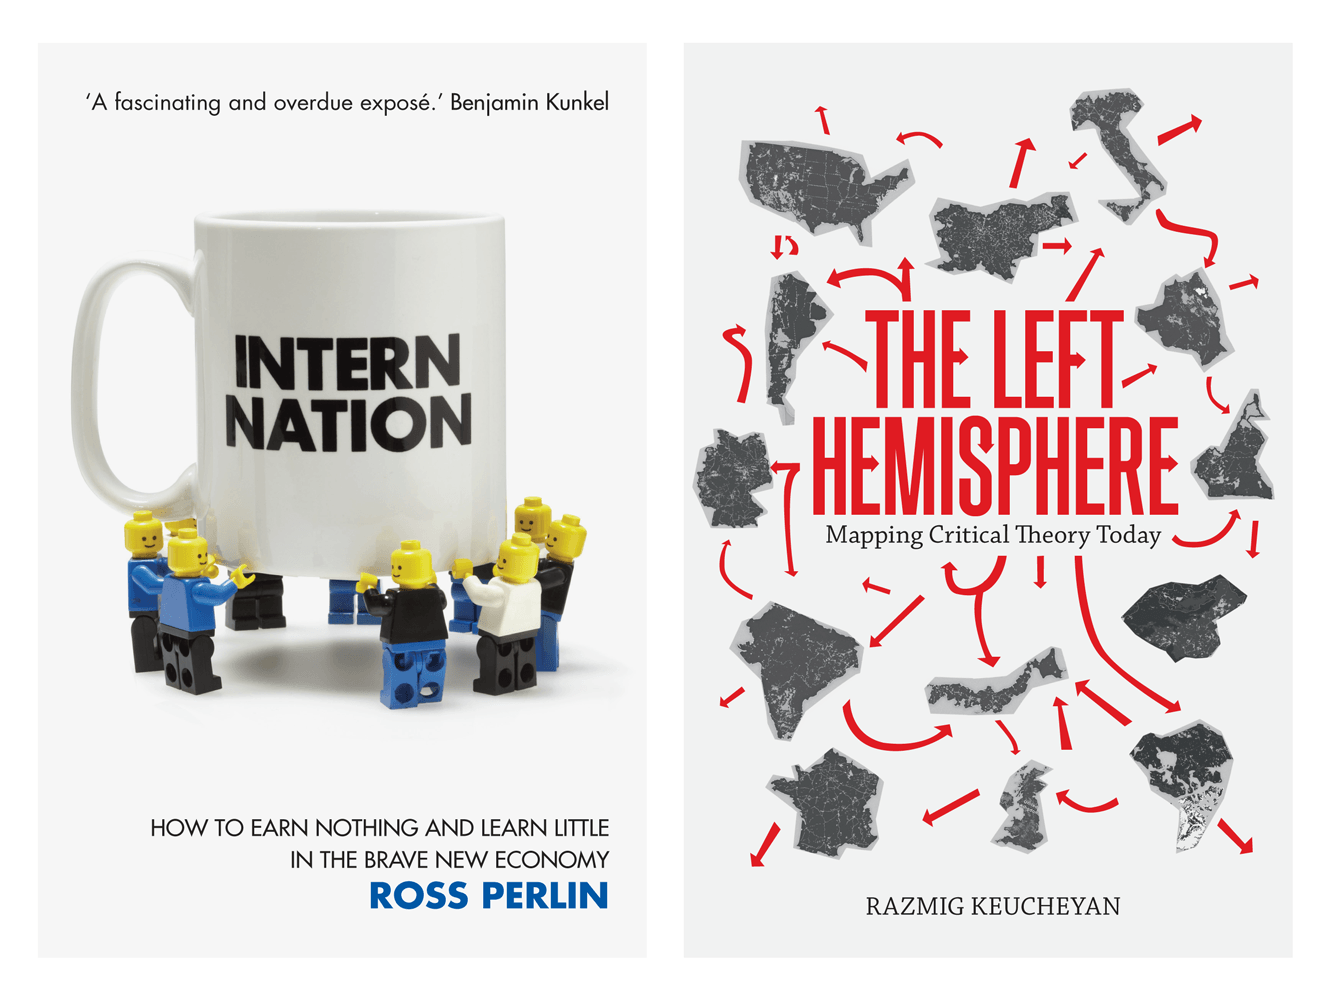 Book Cover Designs For Verso Books. Designed By &&& Creative